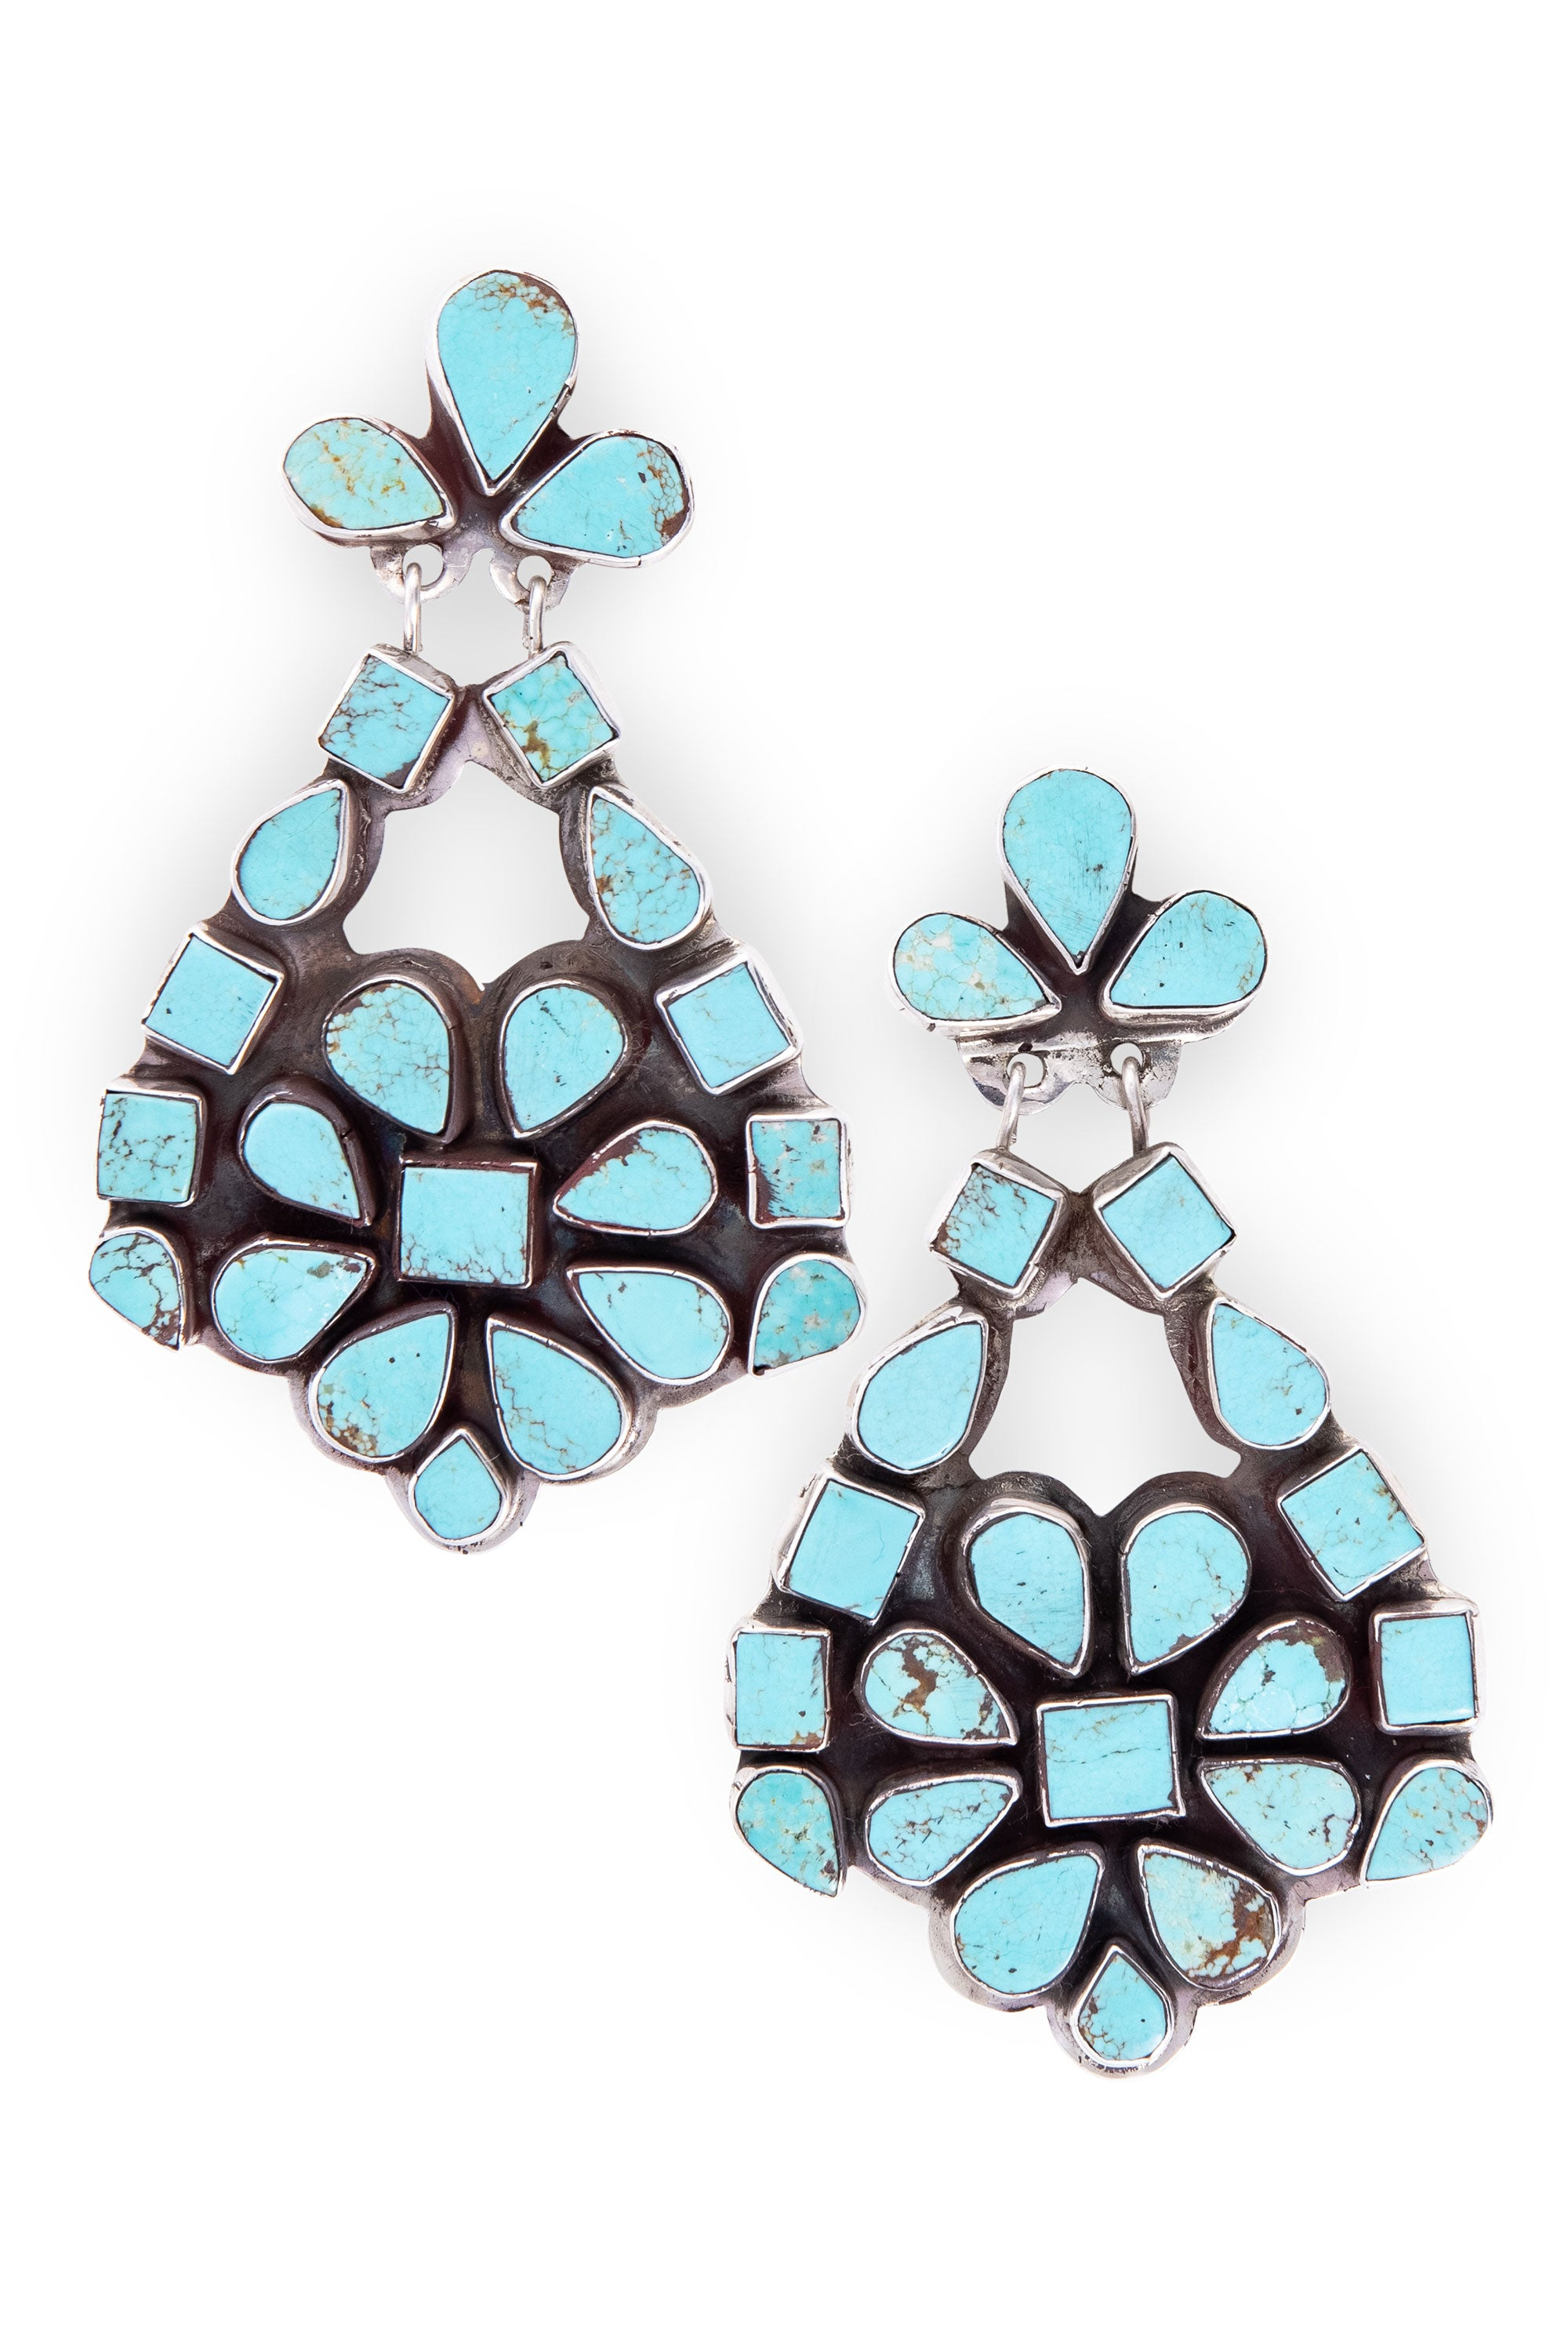 Earrings, Oscar Betz, Chandelier, Turquoise, Hallmark, 593T1